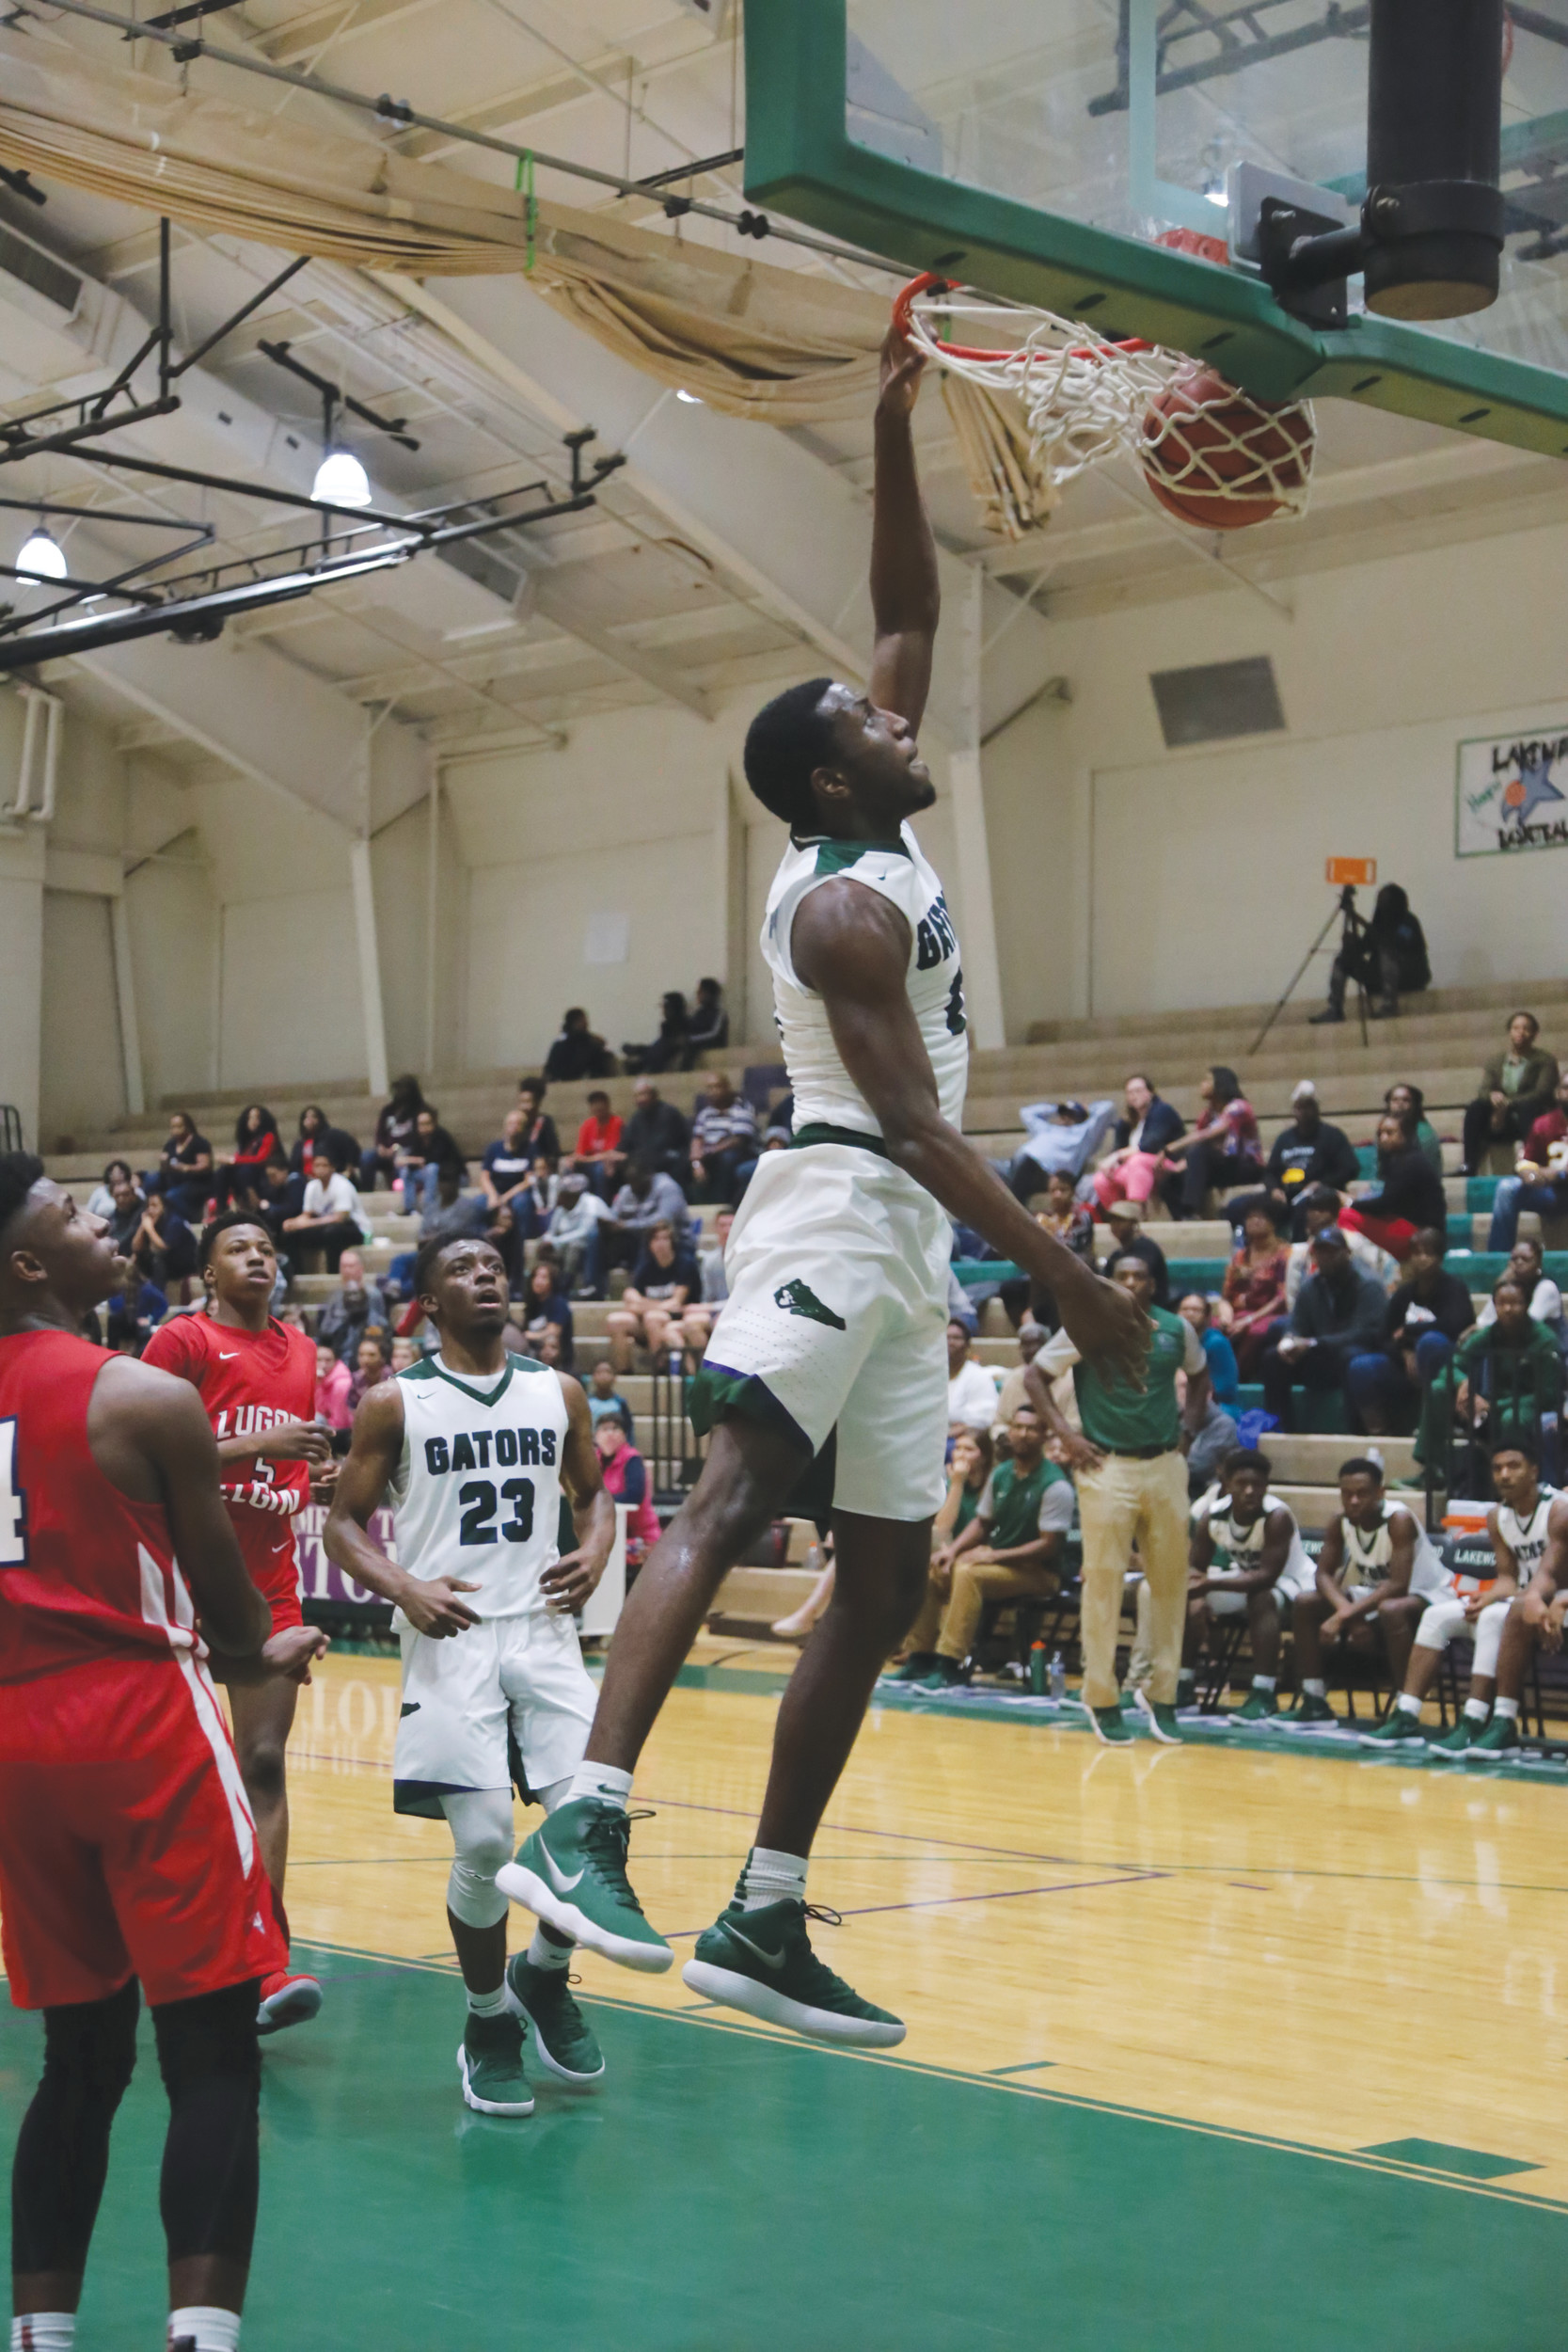 Lakewood's Akeem Lawson throws down a dunk during the third quarter of the Gators' 66-49 Region VI-4A victory over Lugoff-Elgin on Friday at The Swamp. Lawson finished with a double-double of 24 points and 12 rebounds.